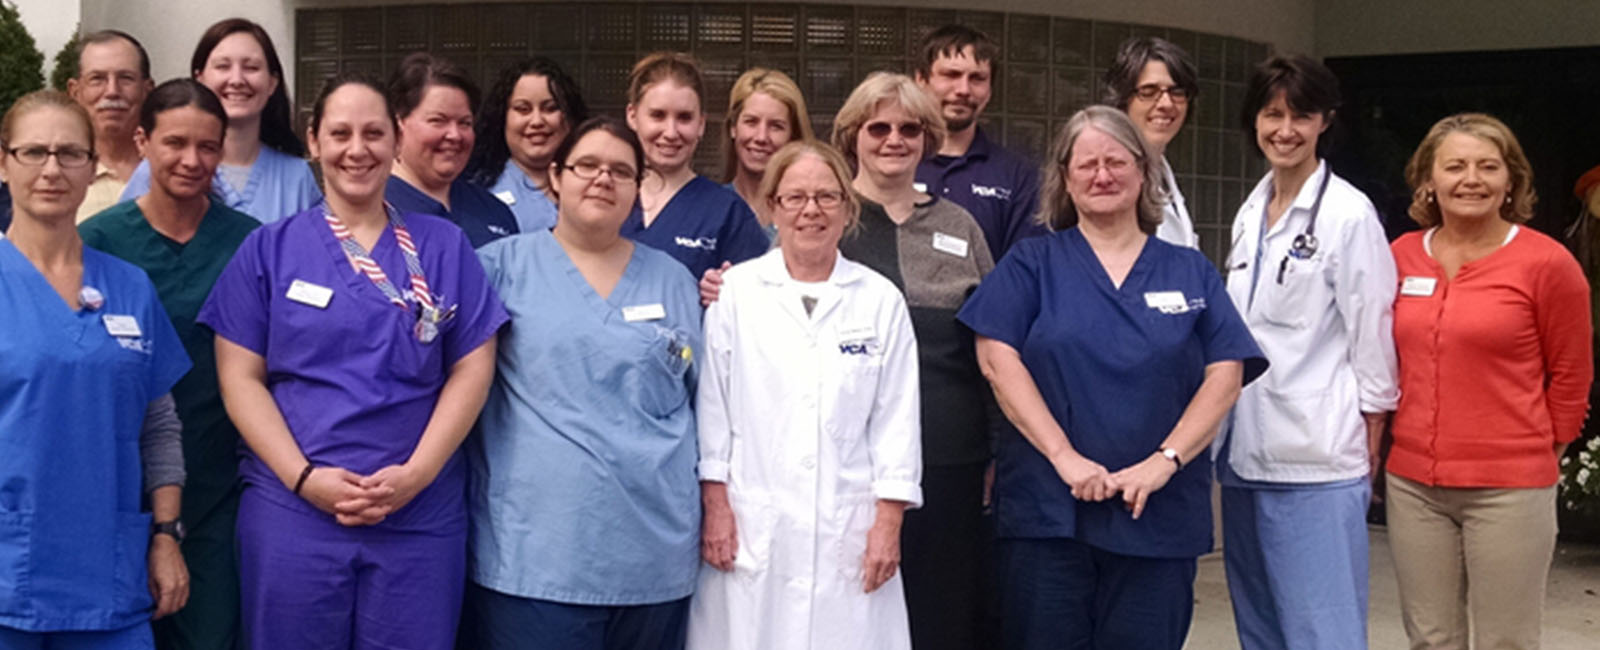 Homepage Team Picture of VCA Boston Road Animal Hospital